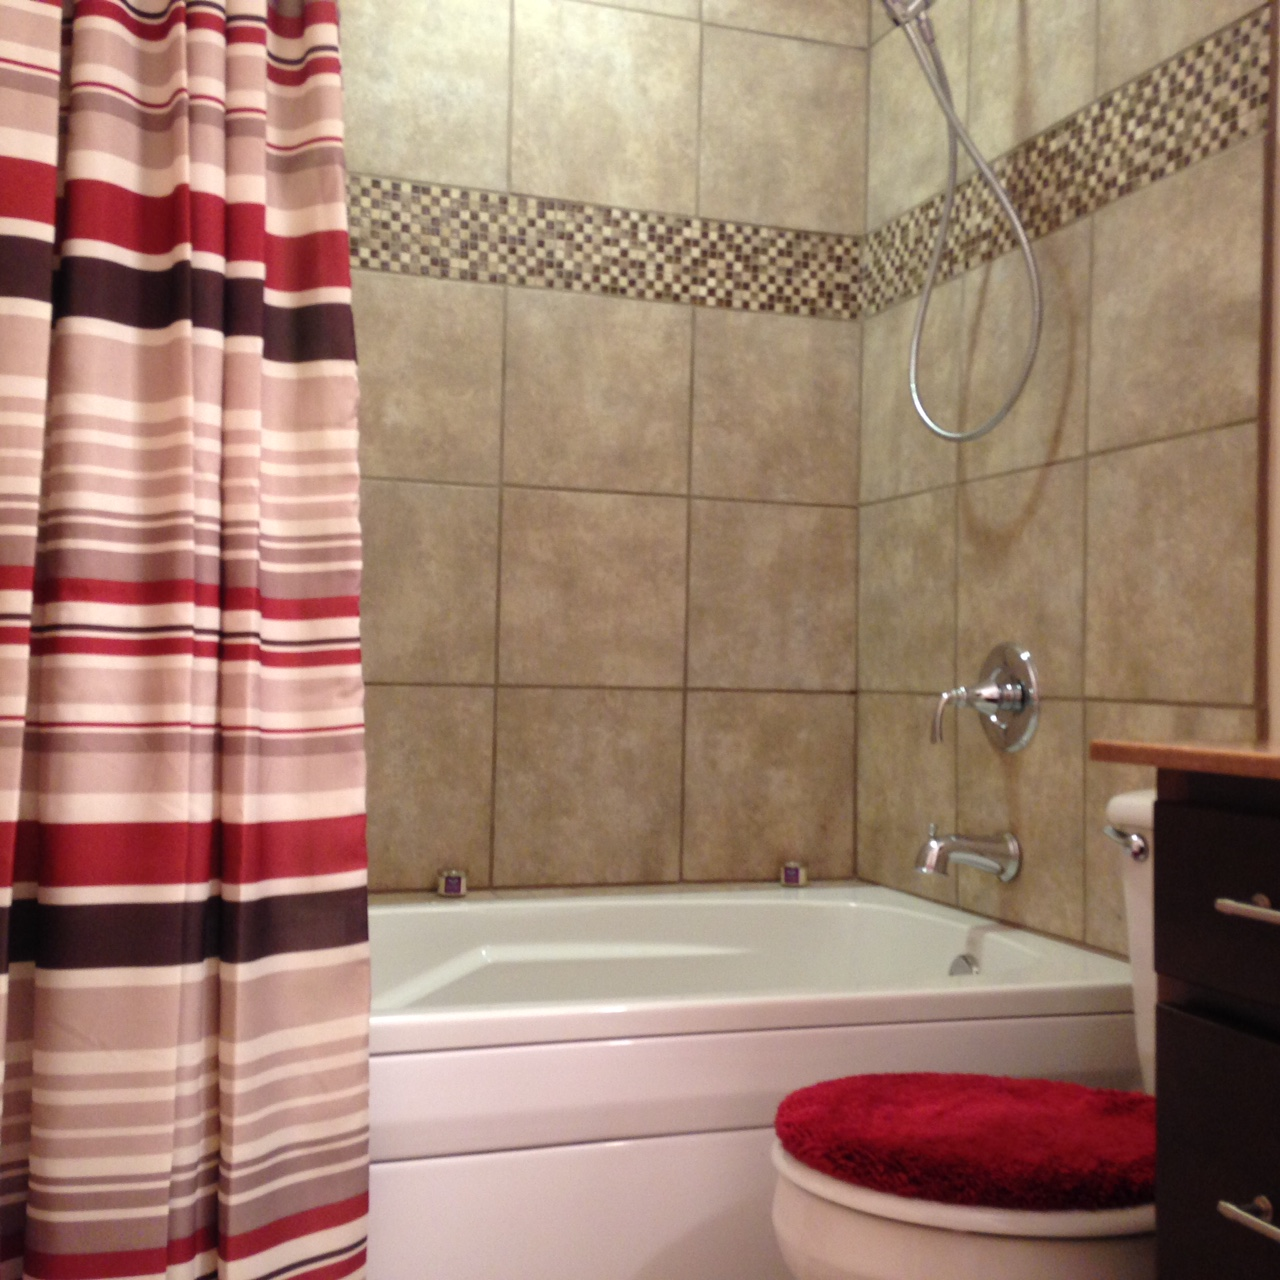 Kim's Master Bathroom Remodel After Photos